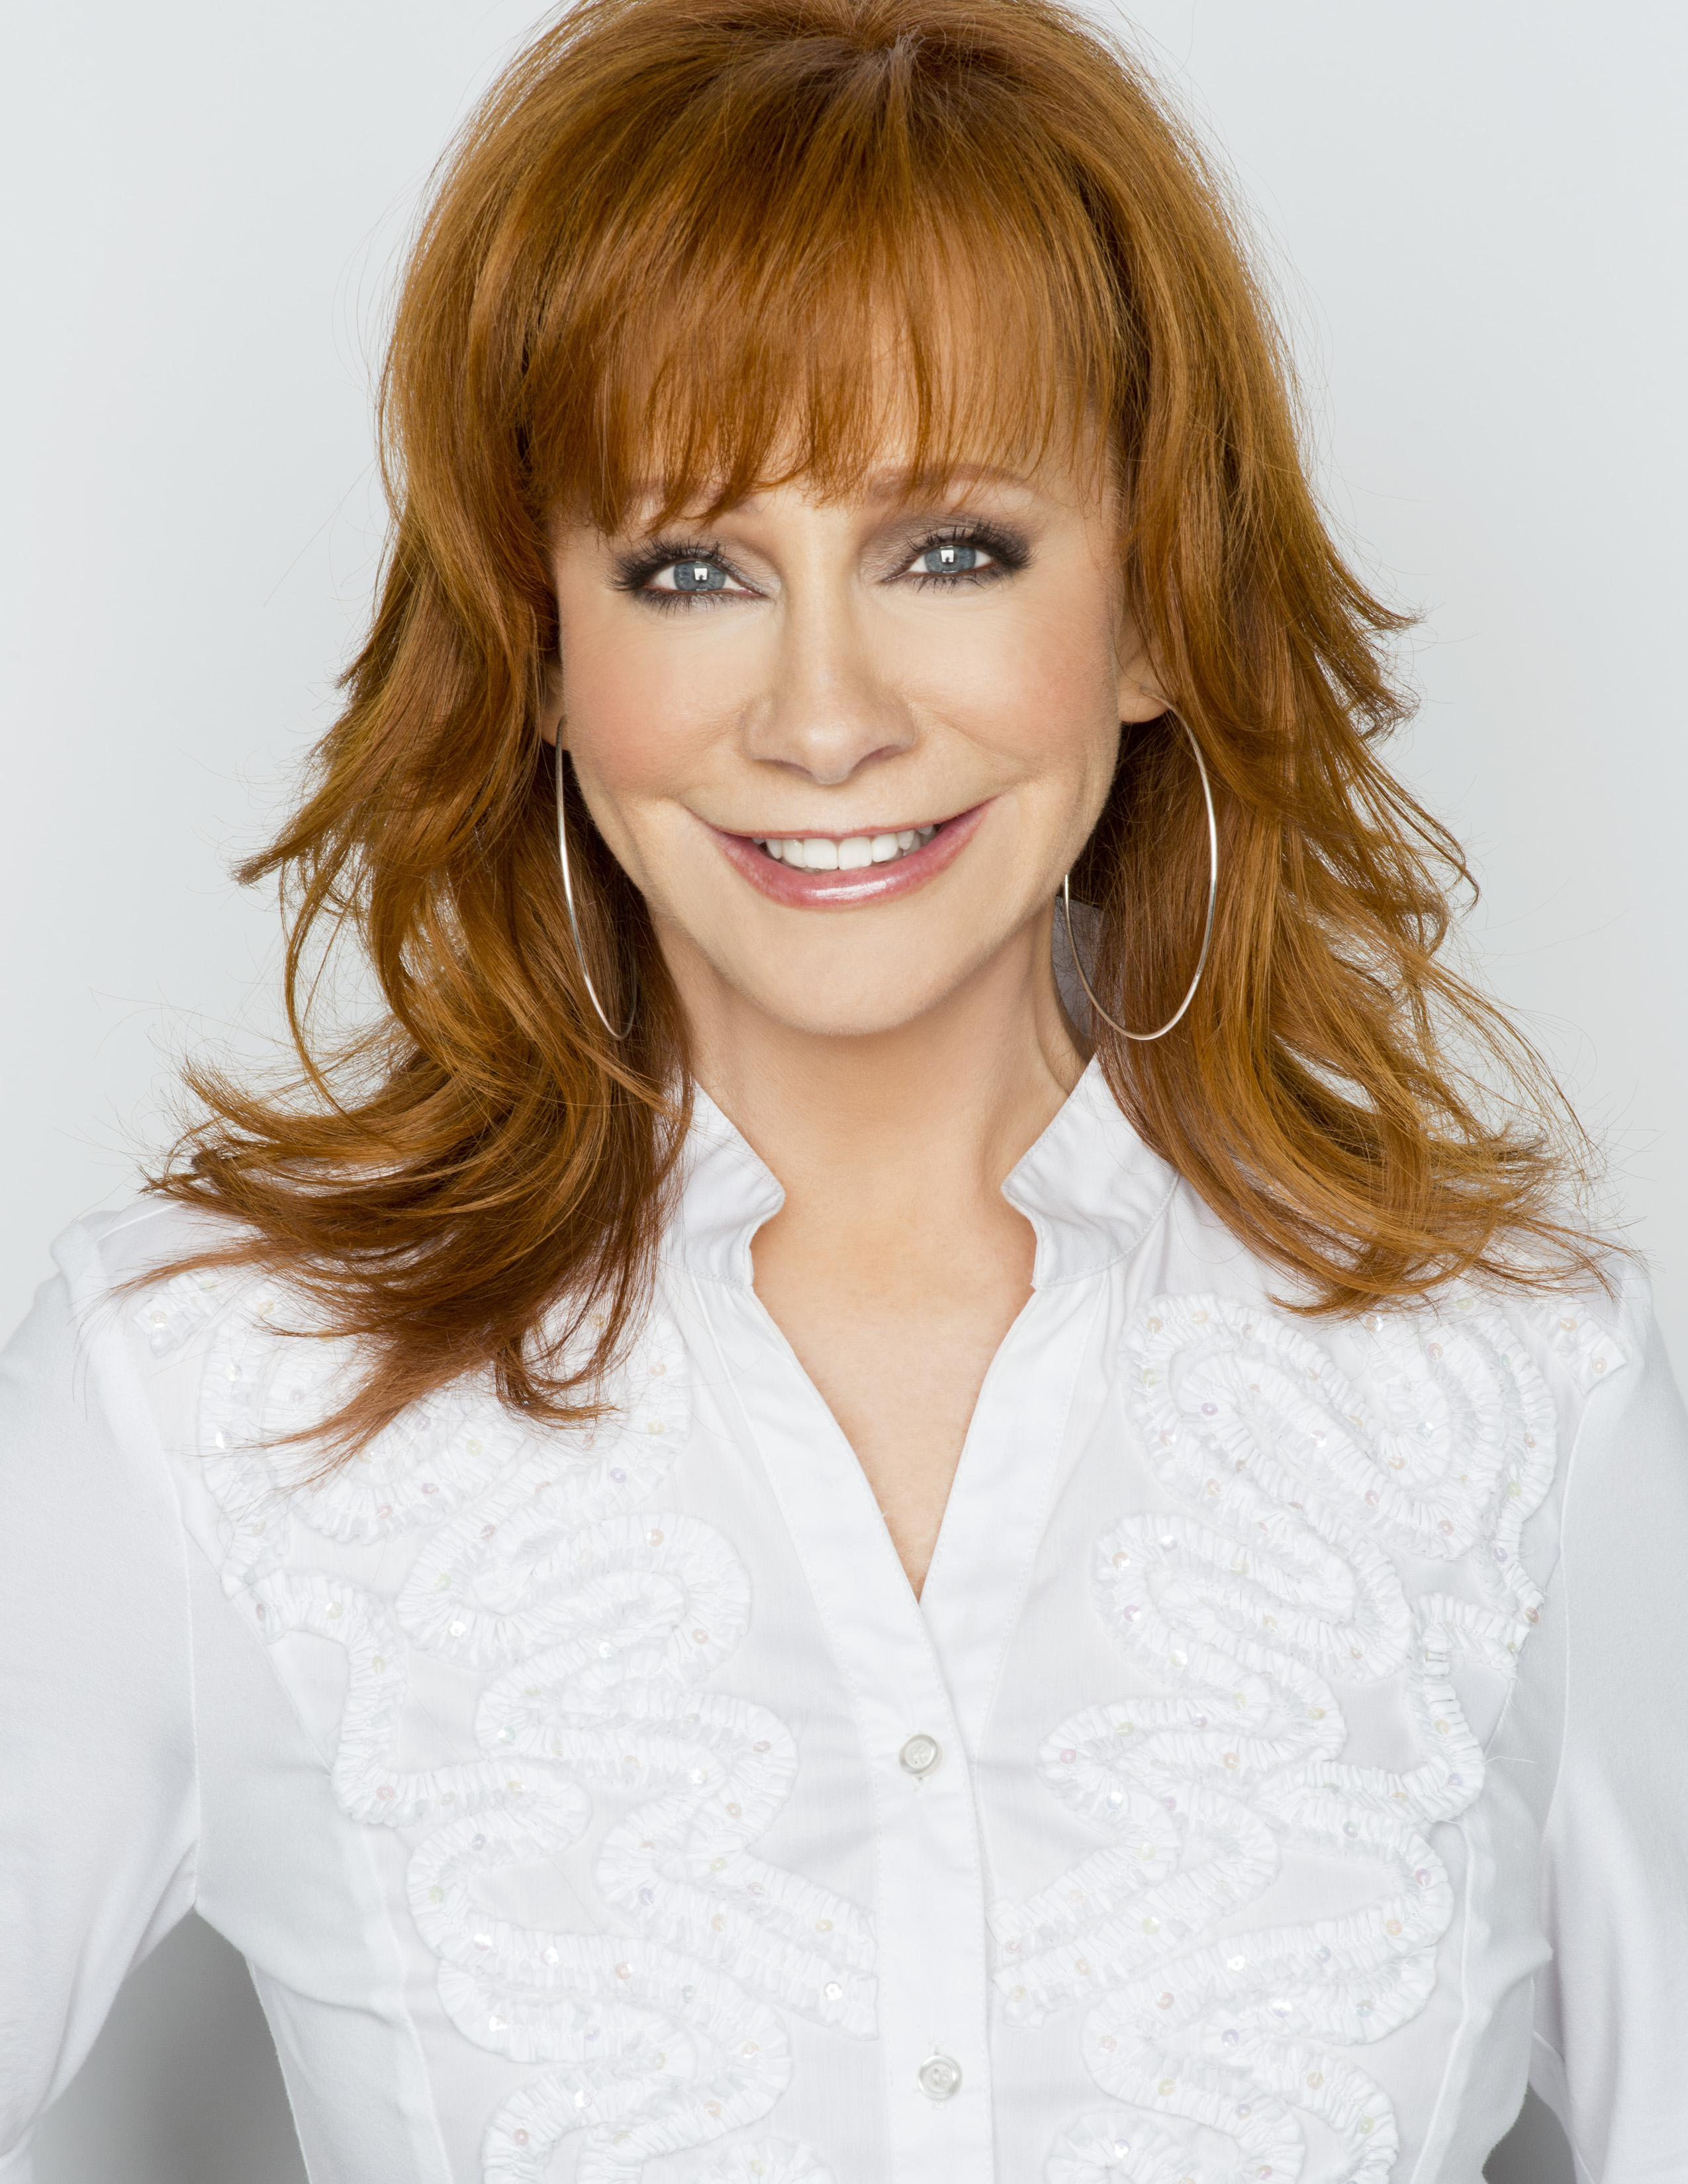 country singer, actress, musician Reba McEntire - age: 65